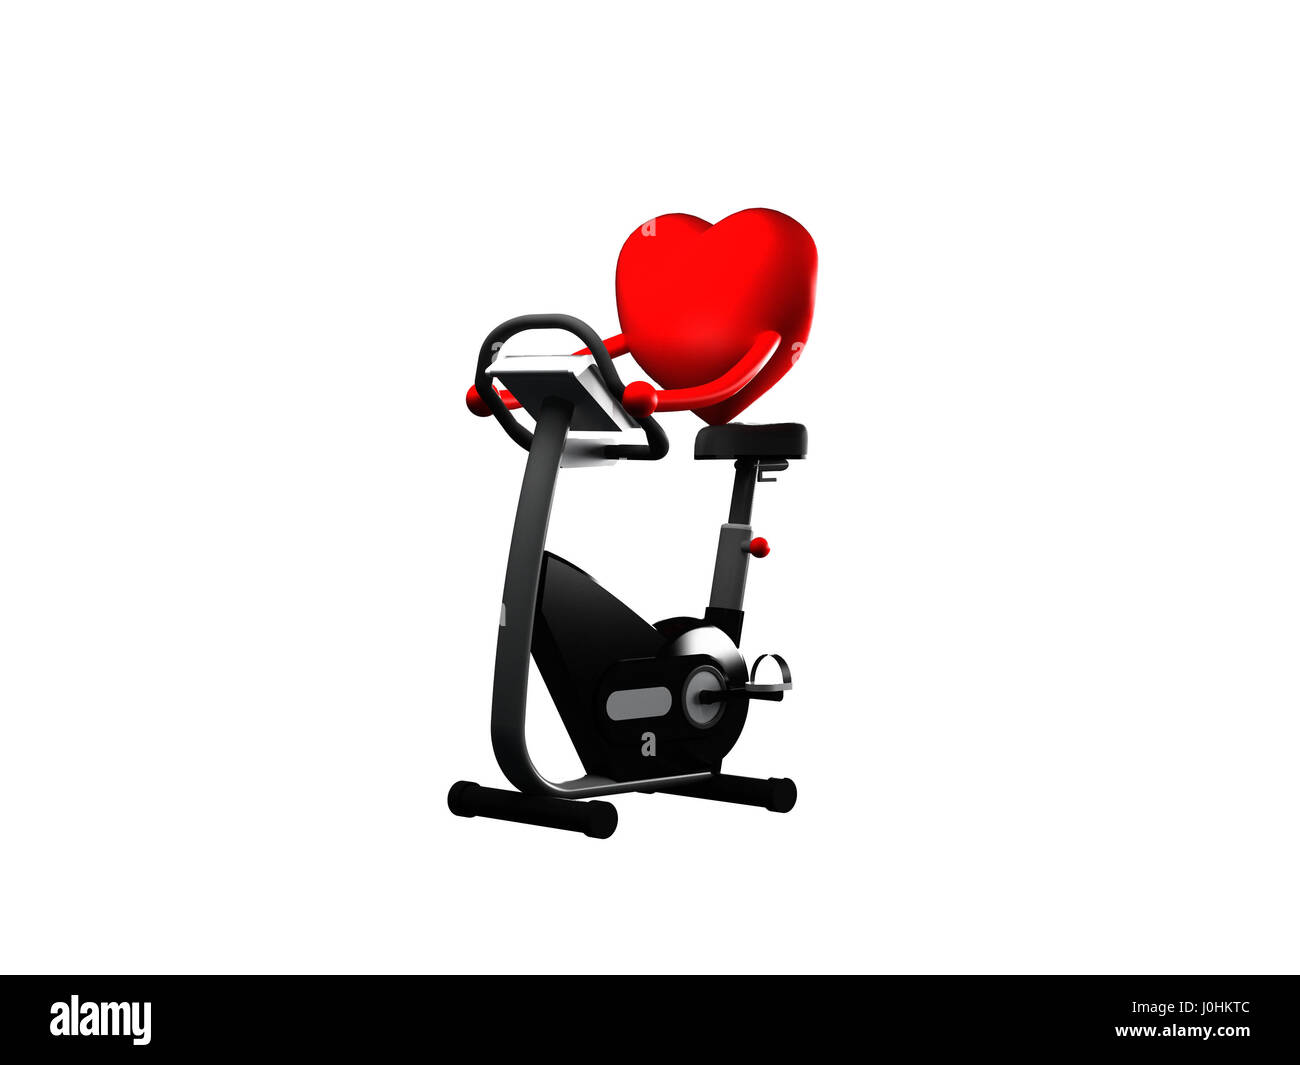 Red Heart Working out on Elliptical, exercising for health on white background - Stock Image